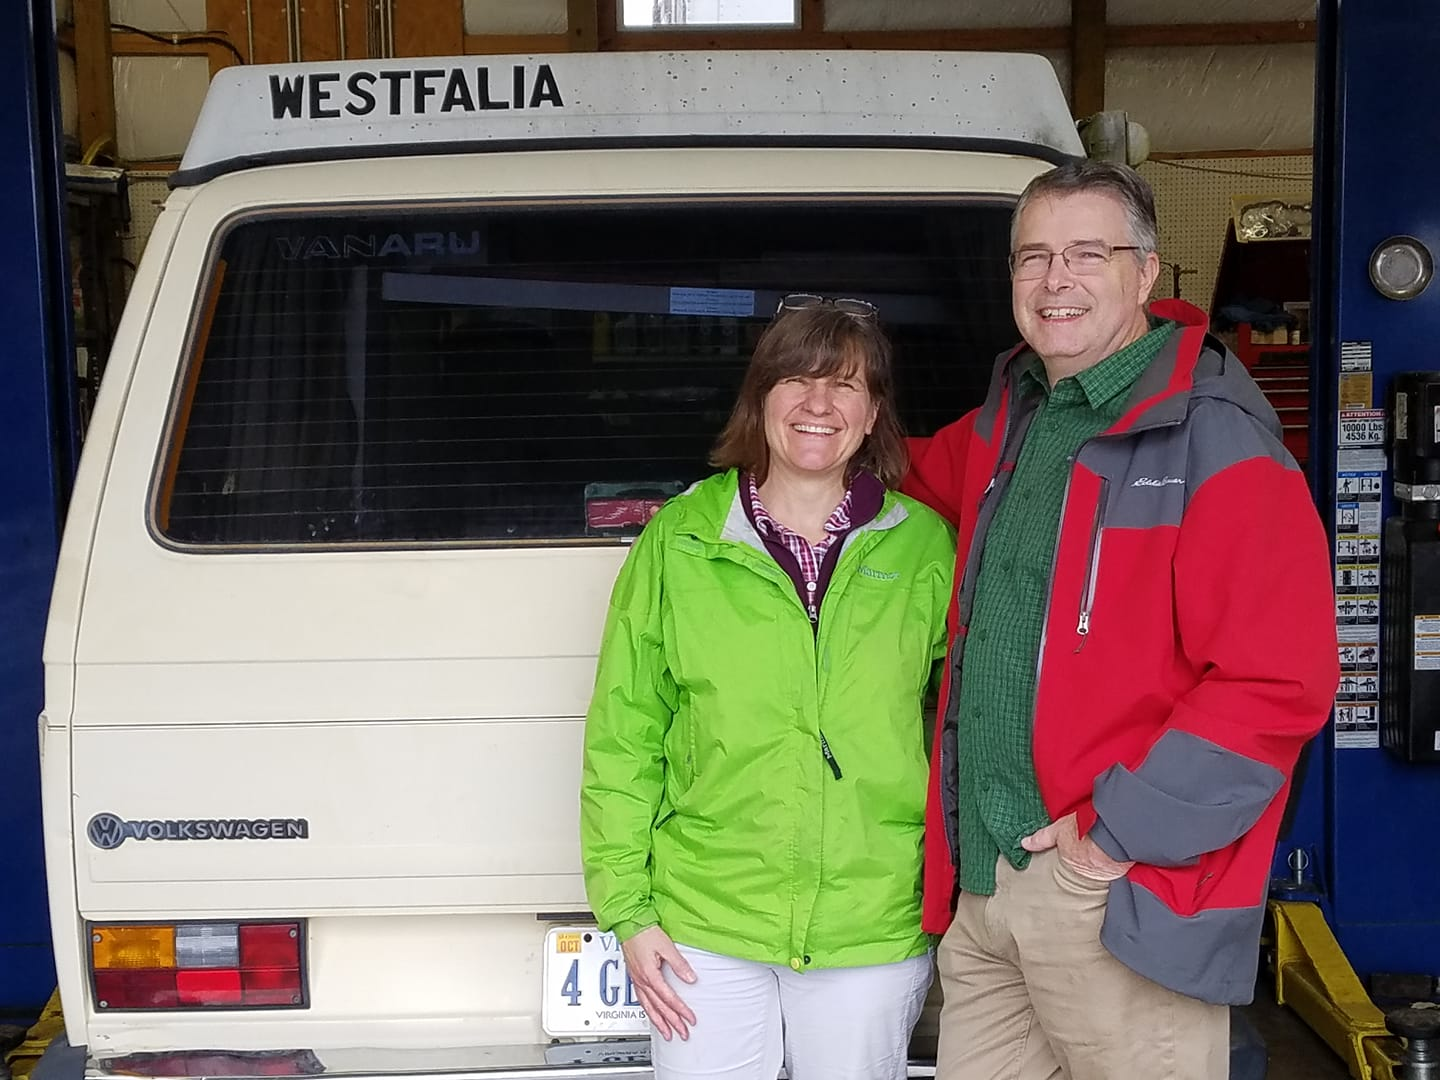 """From our partner facility, Valley Westy— """"Brad and wife Judy picking up Vanaru converted 84 Westy. Genuine smiles of happiness to get a 4 generation van back and take sons camping soon. Enjoy the fresh 170hp. Use cruise to avoid speeding tickets."""""""